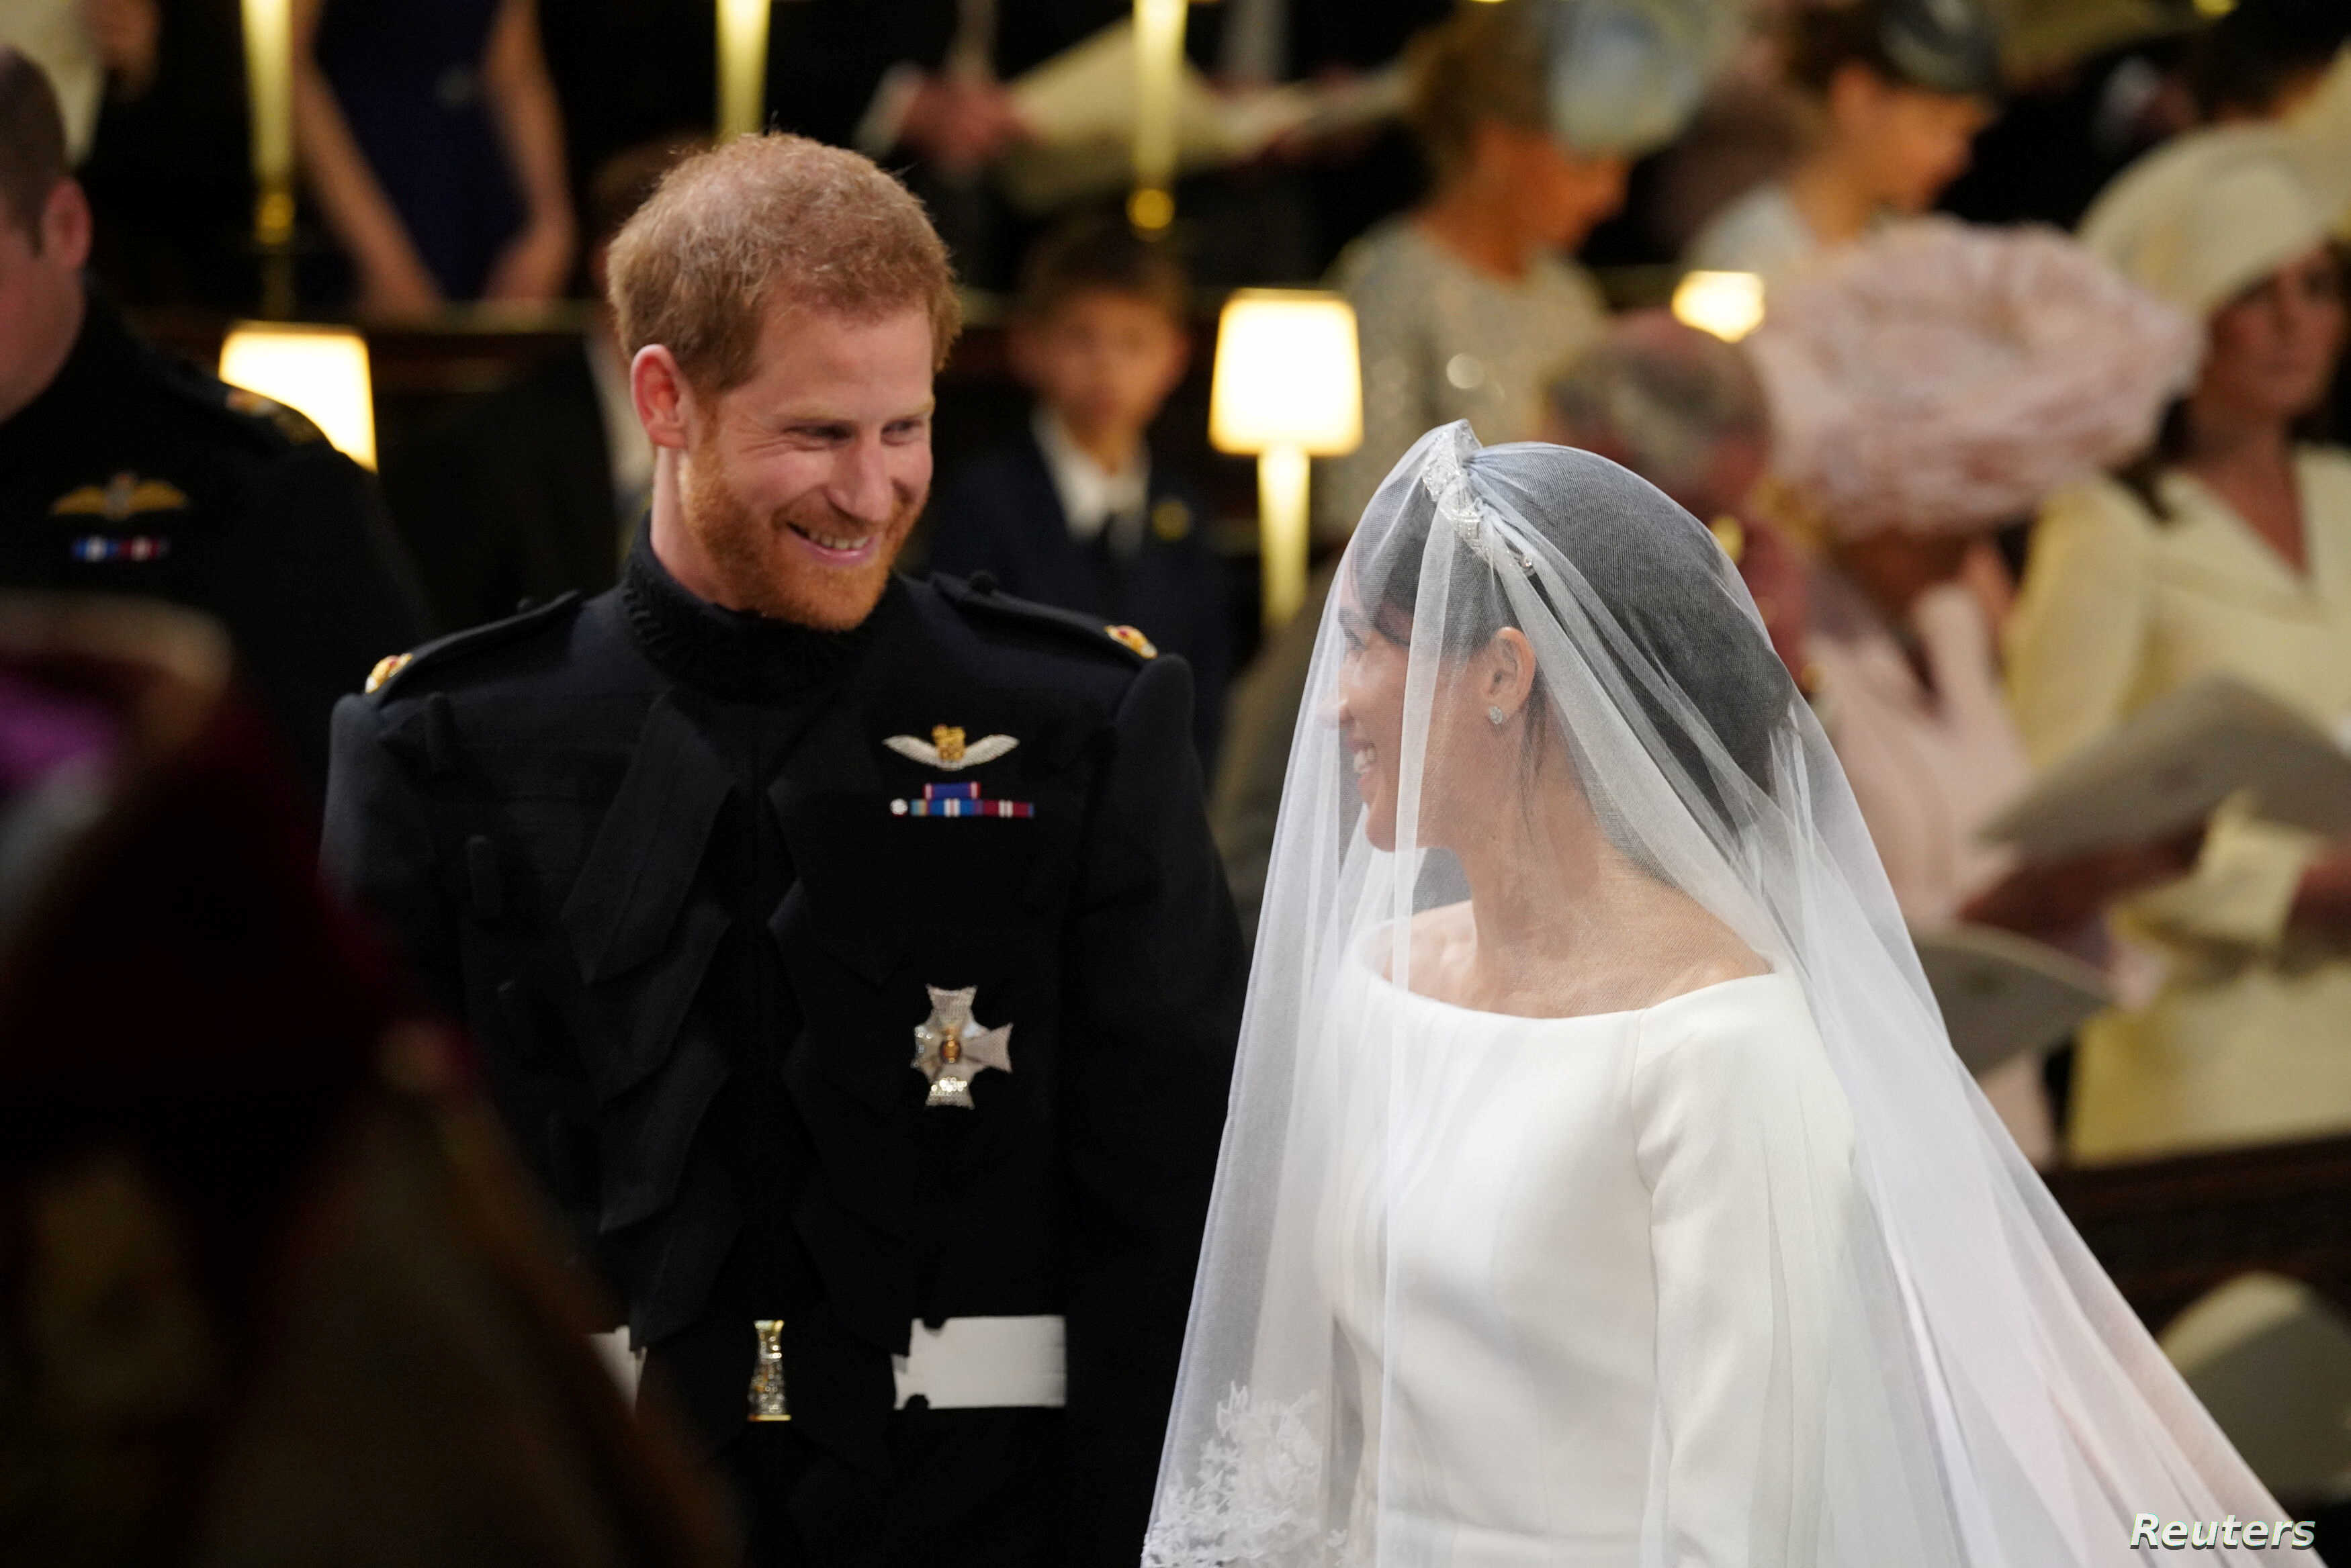 Prince Harry looks at his bride, Meghan Markle, as she arrives accompanied by the Prince of Wales in St George's Chapel at Windsor Castle for their wedding in Windsor, Britain, May 19, 2018.